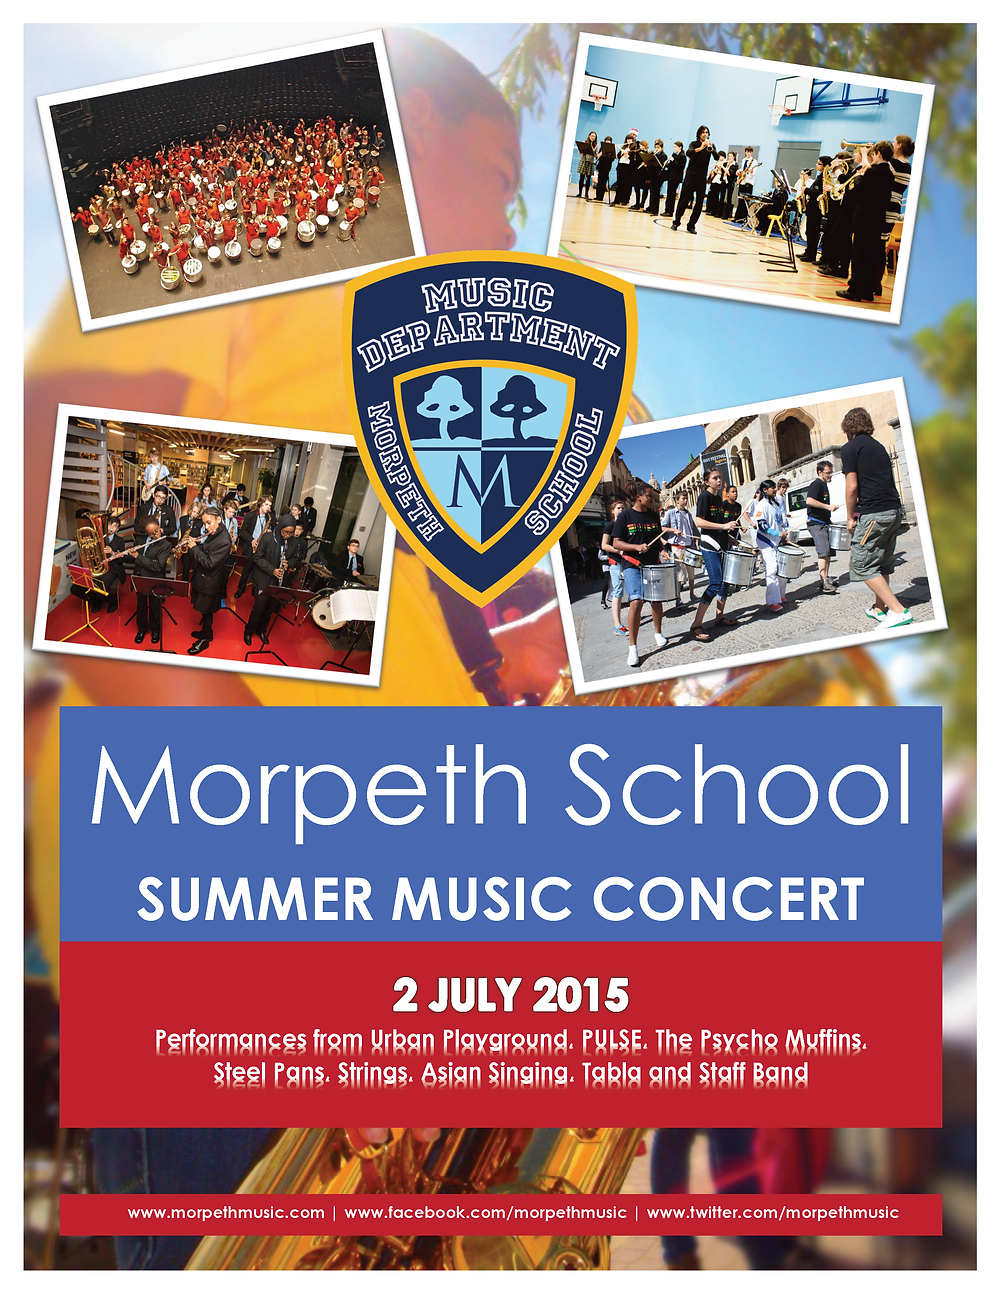 Morpeth Summer Concert Flyer 2015.png